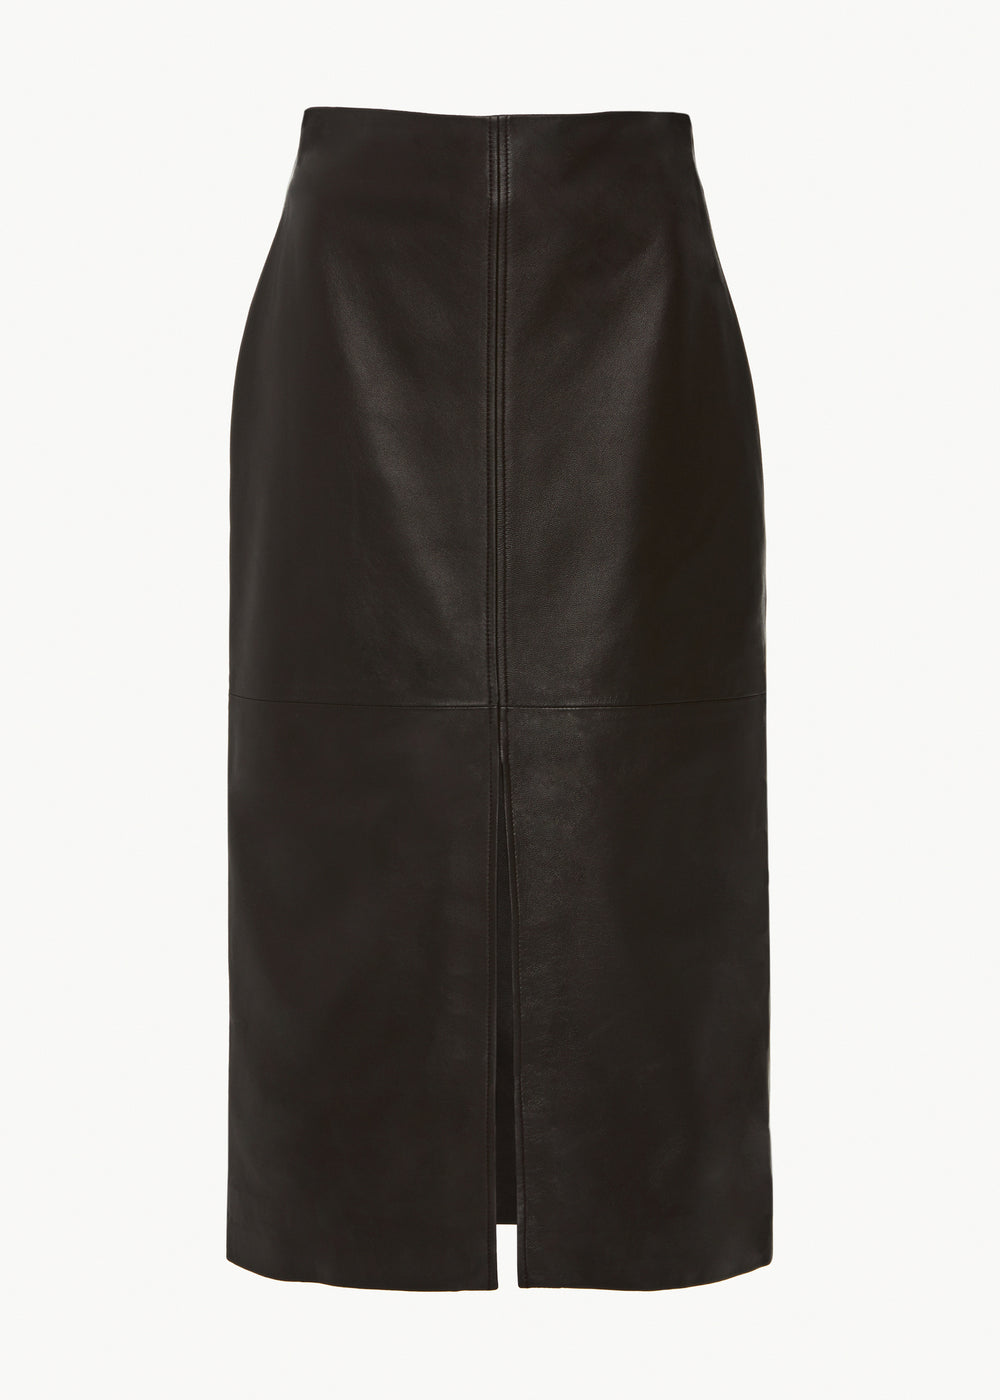 Front Slit Skirt in Leather - Brown - CO